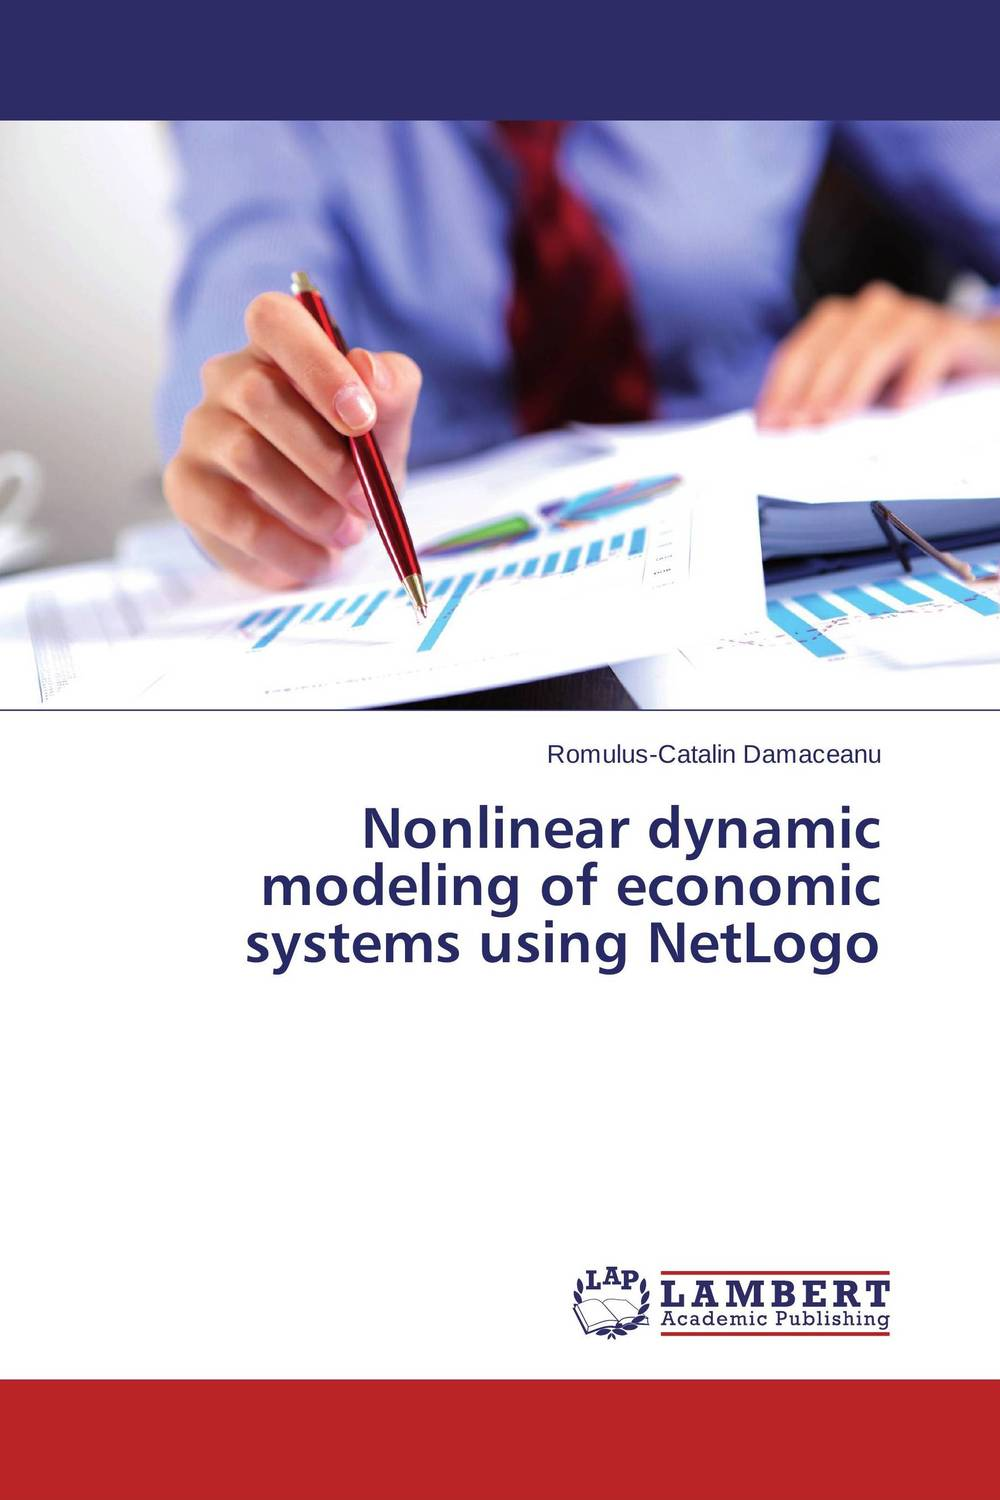 Nonlinear dynamic modeling of economic systems using NetLogo web personalization models using computational intelligence